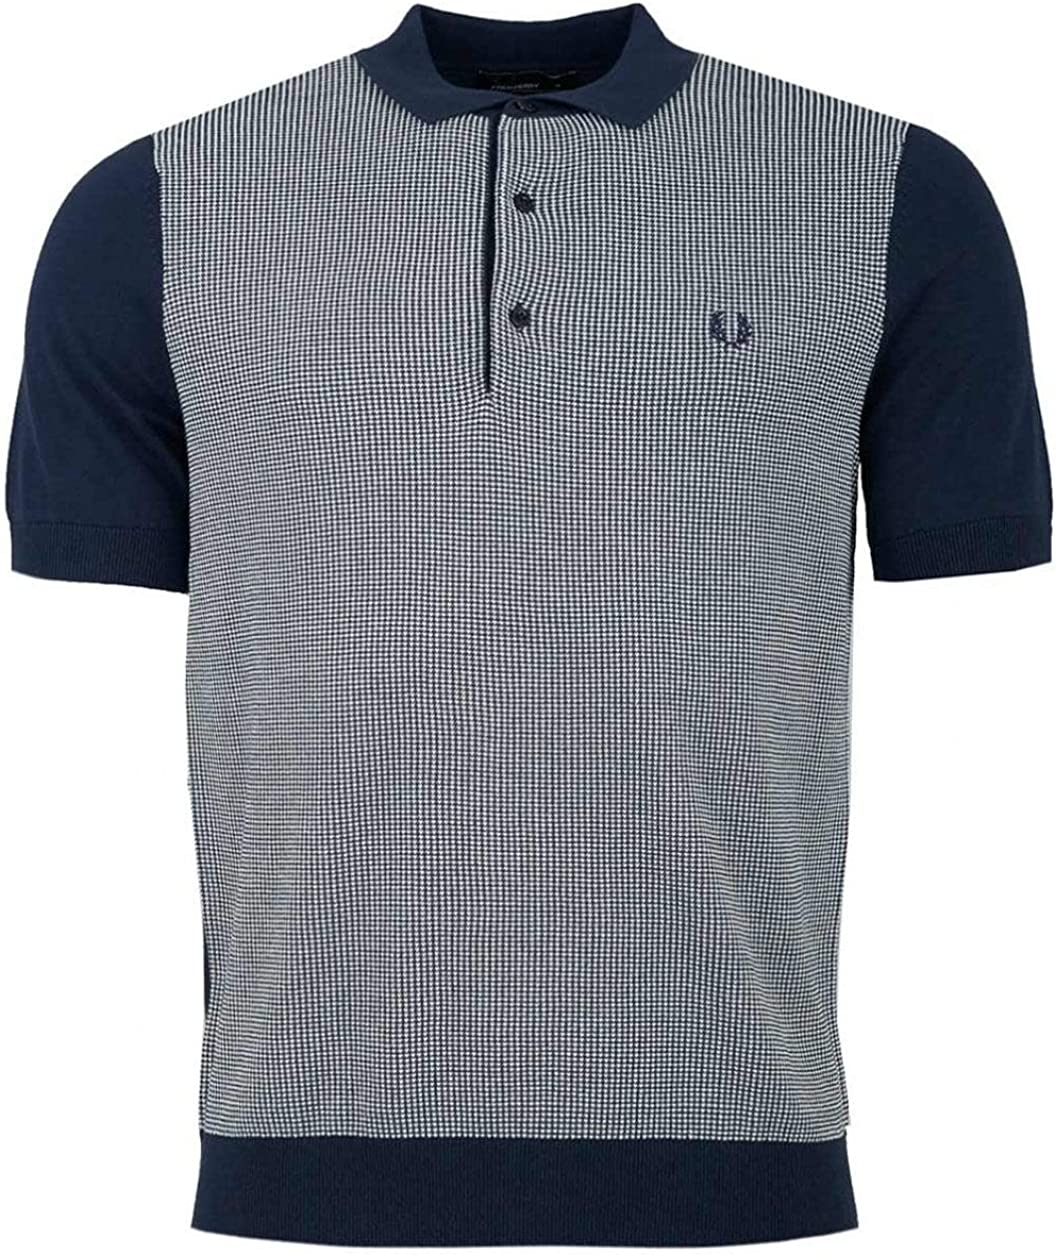 B07N7TYQ4C Fred Perry Men\'s Two-Color Knitted Shirt 71W73a%2BGcIL